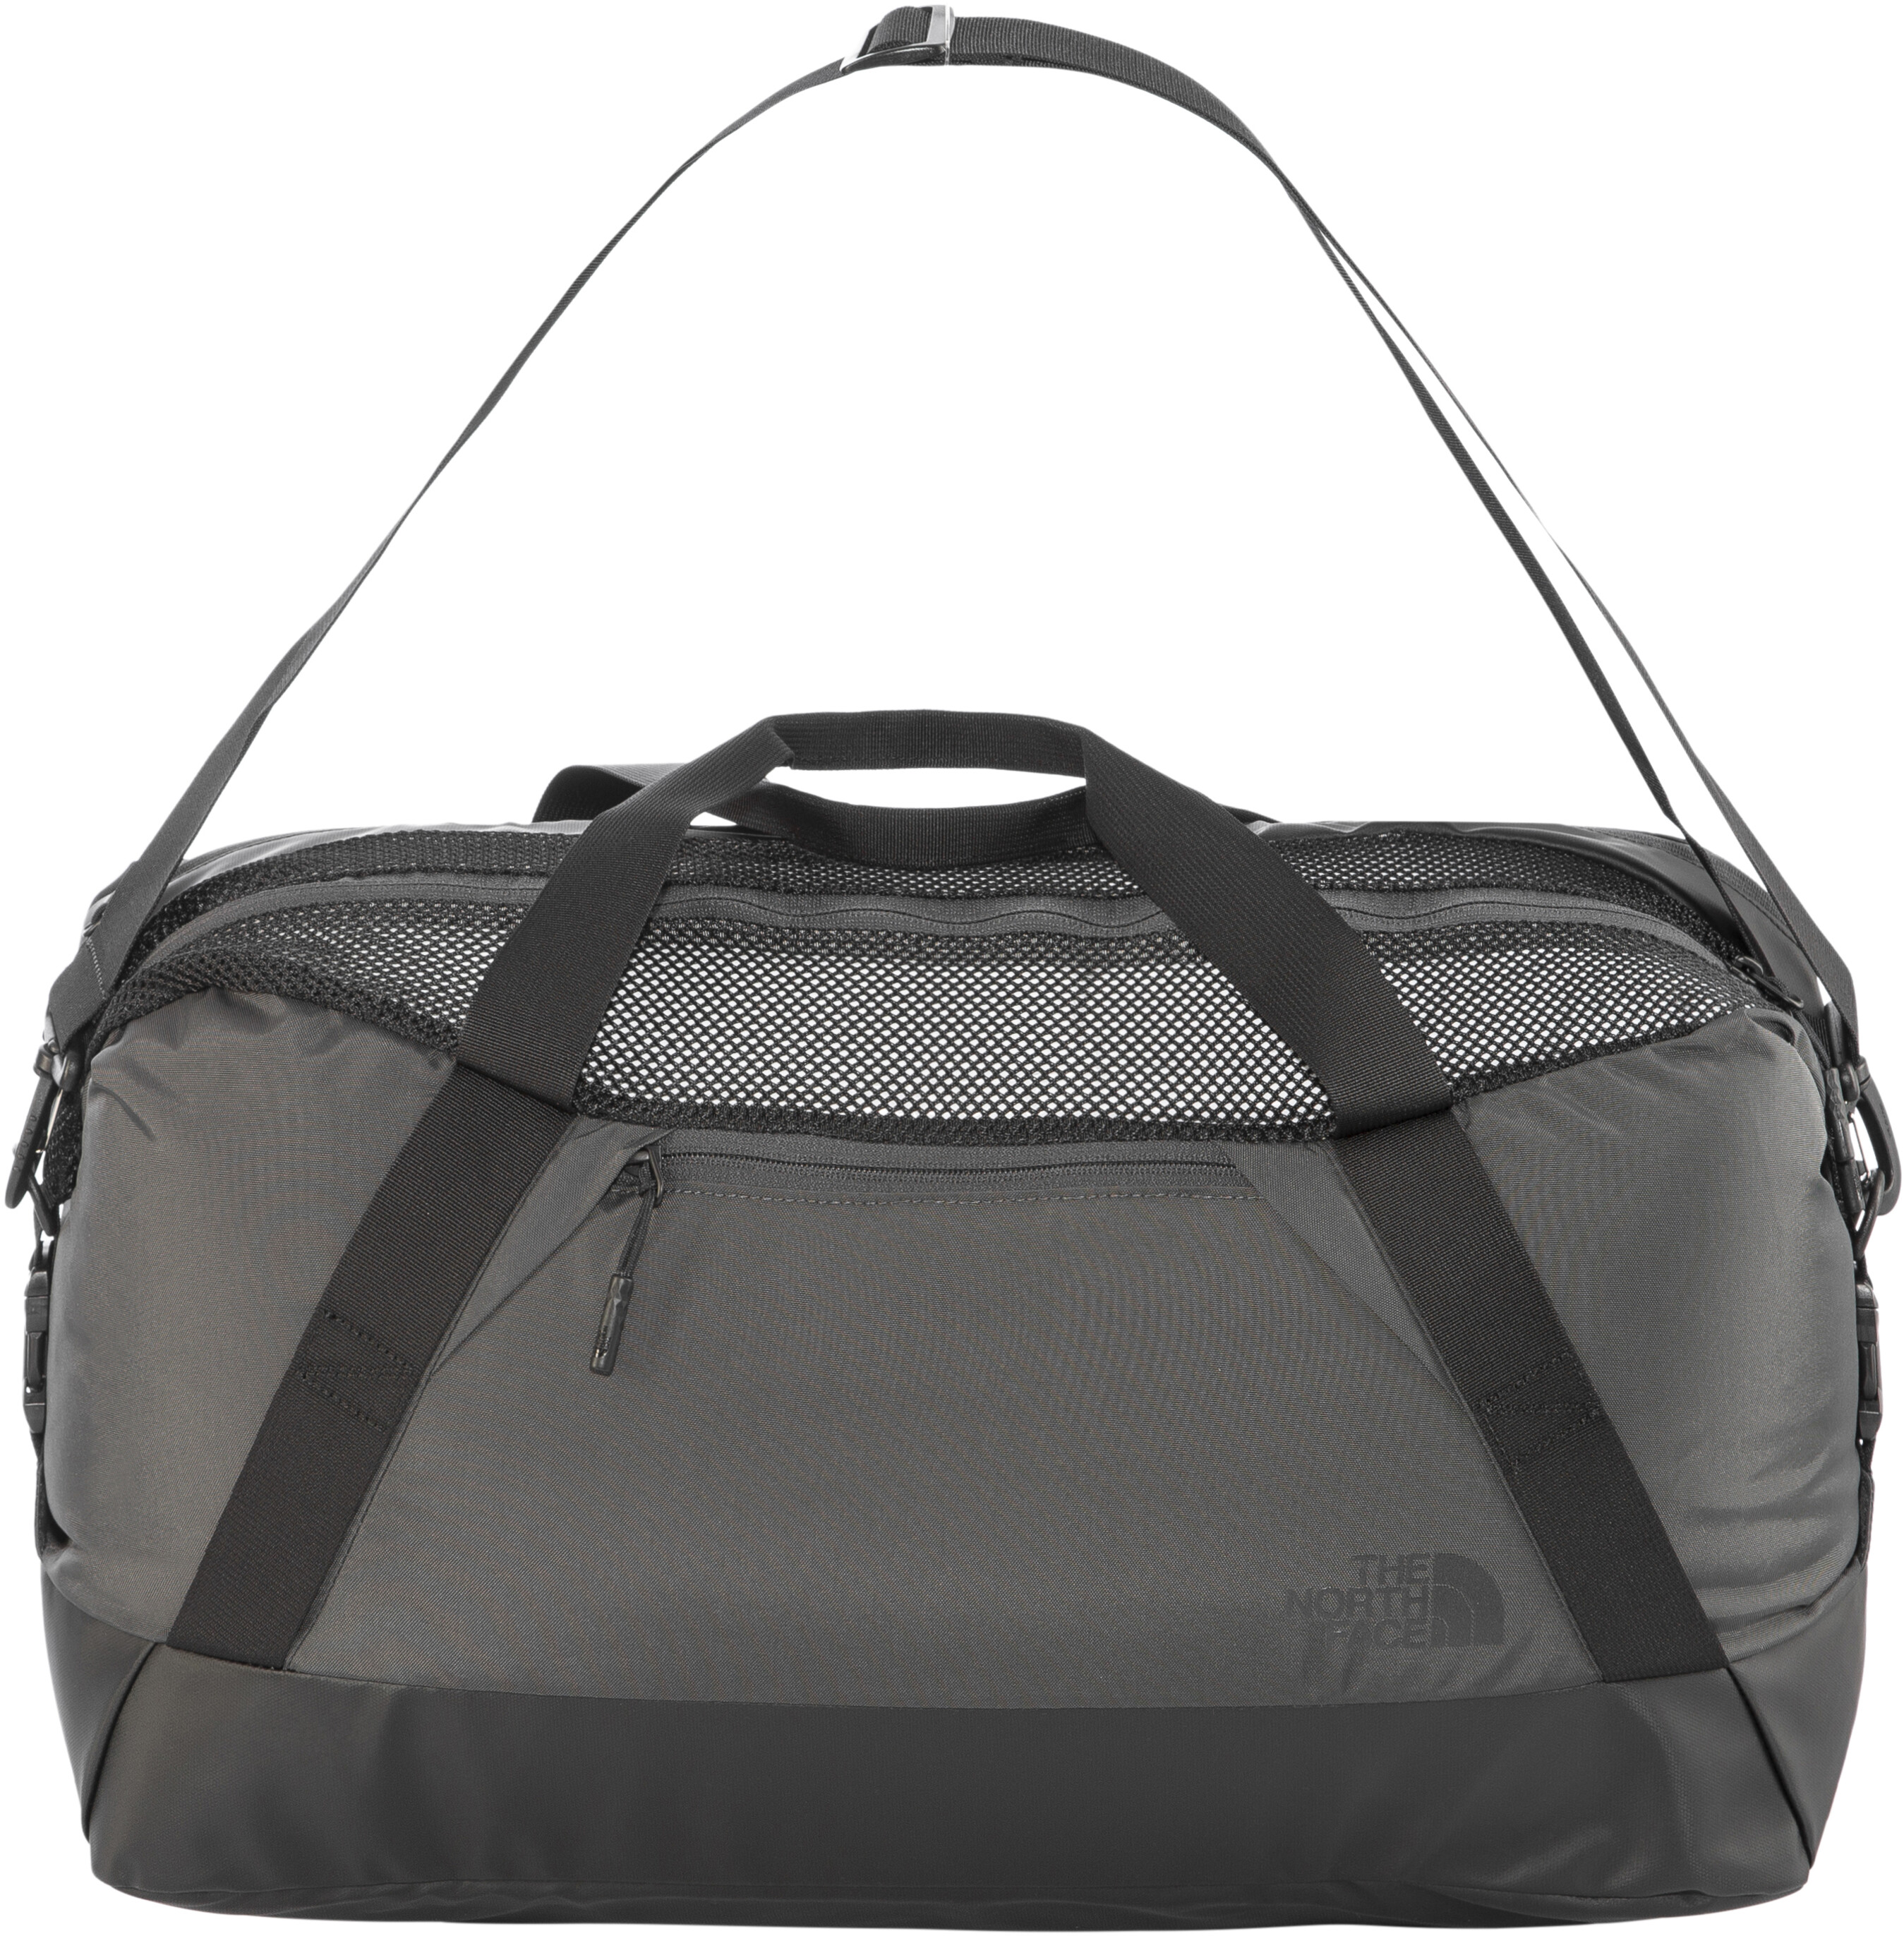 d1f7f90bd4 The North Face Apex Travel Luggage M grey black at Addnature.co.uk